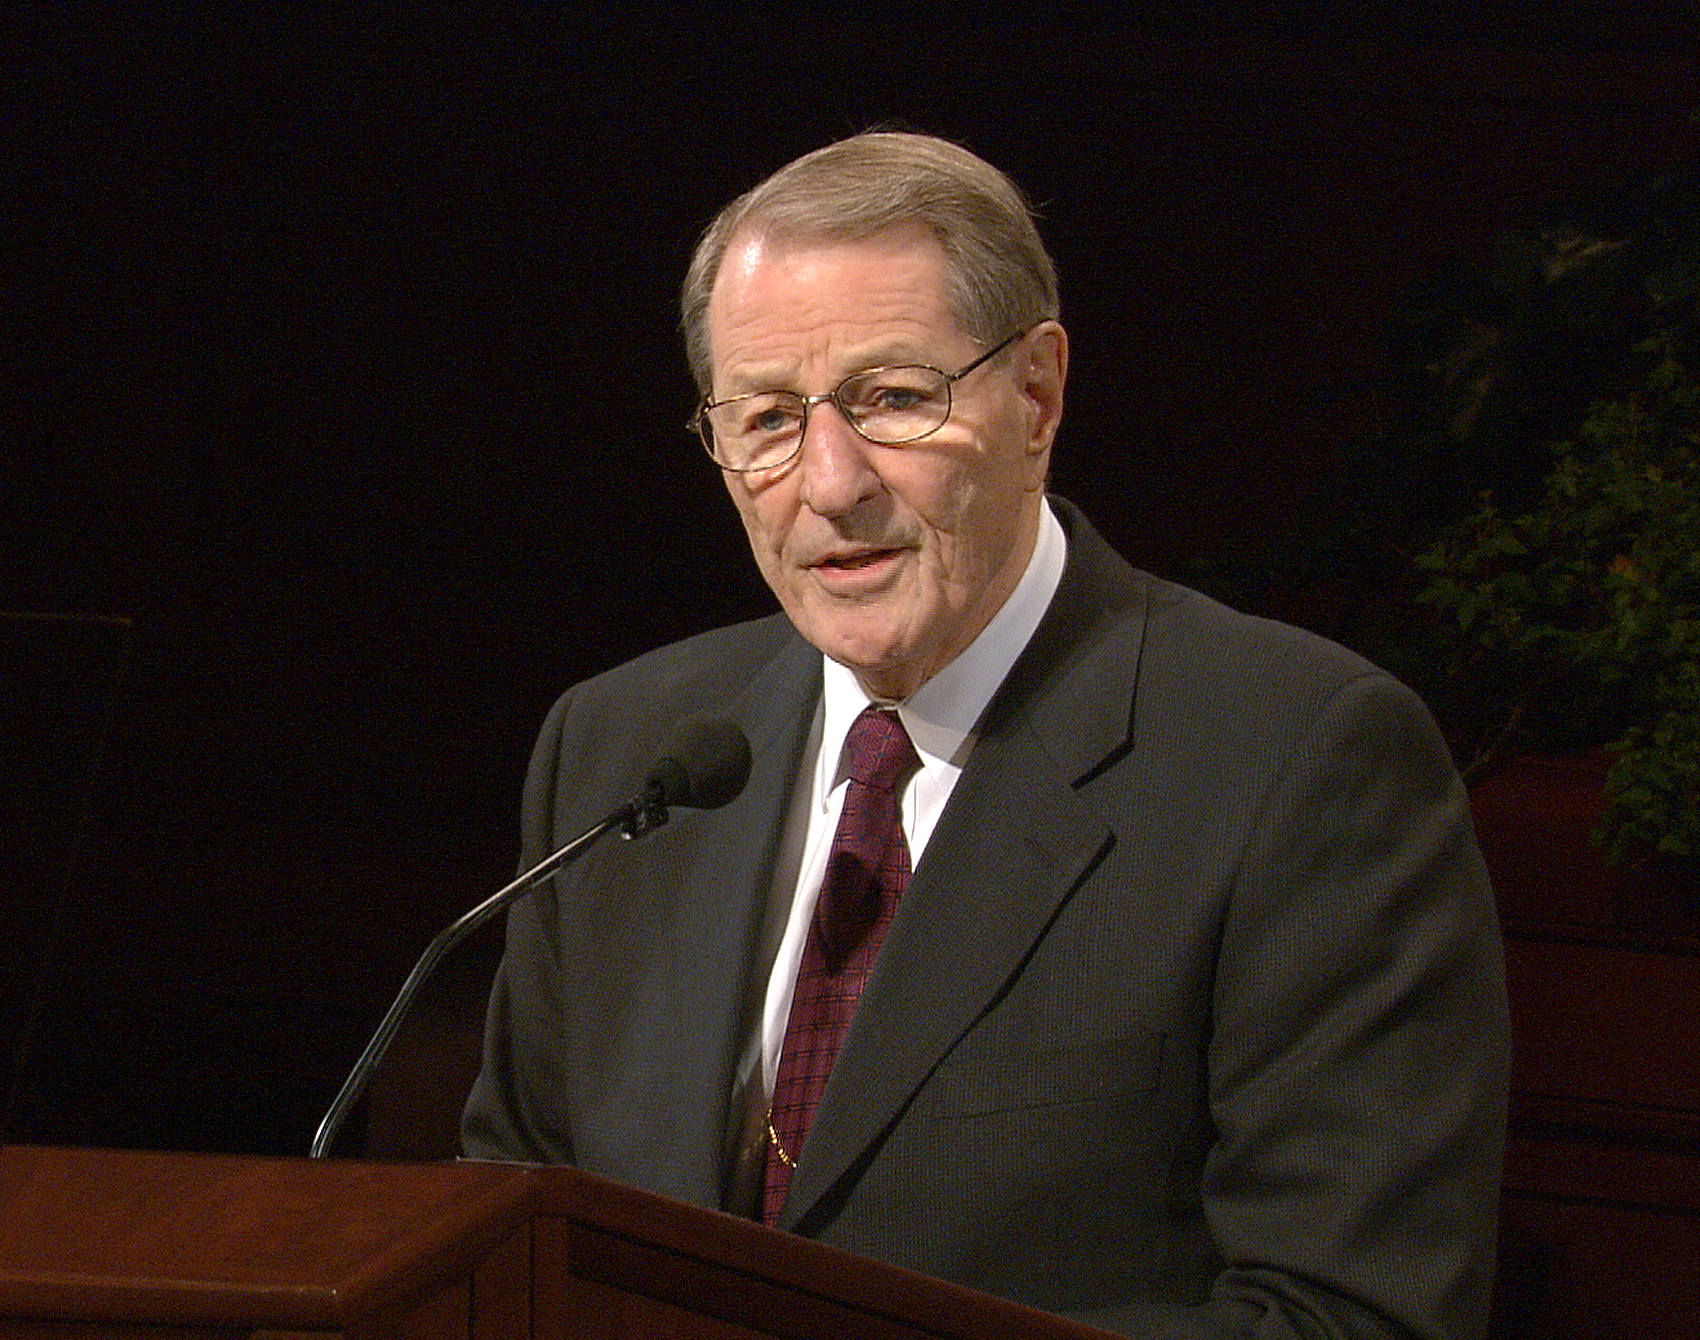 Elder Neal A. Maxwell speaks during general conference, Saturday, Oct 5, 2002.